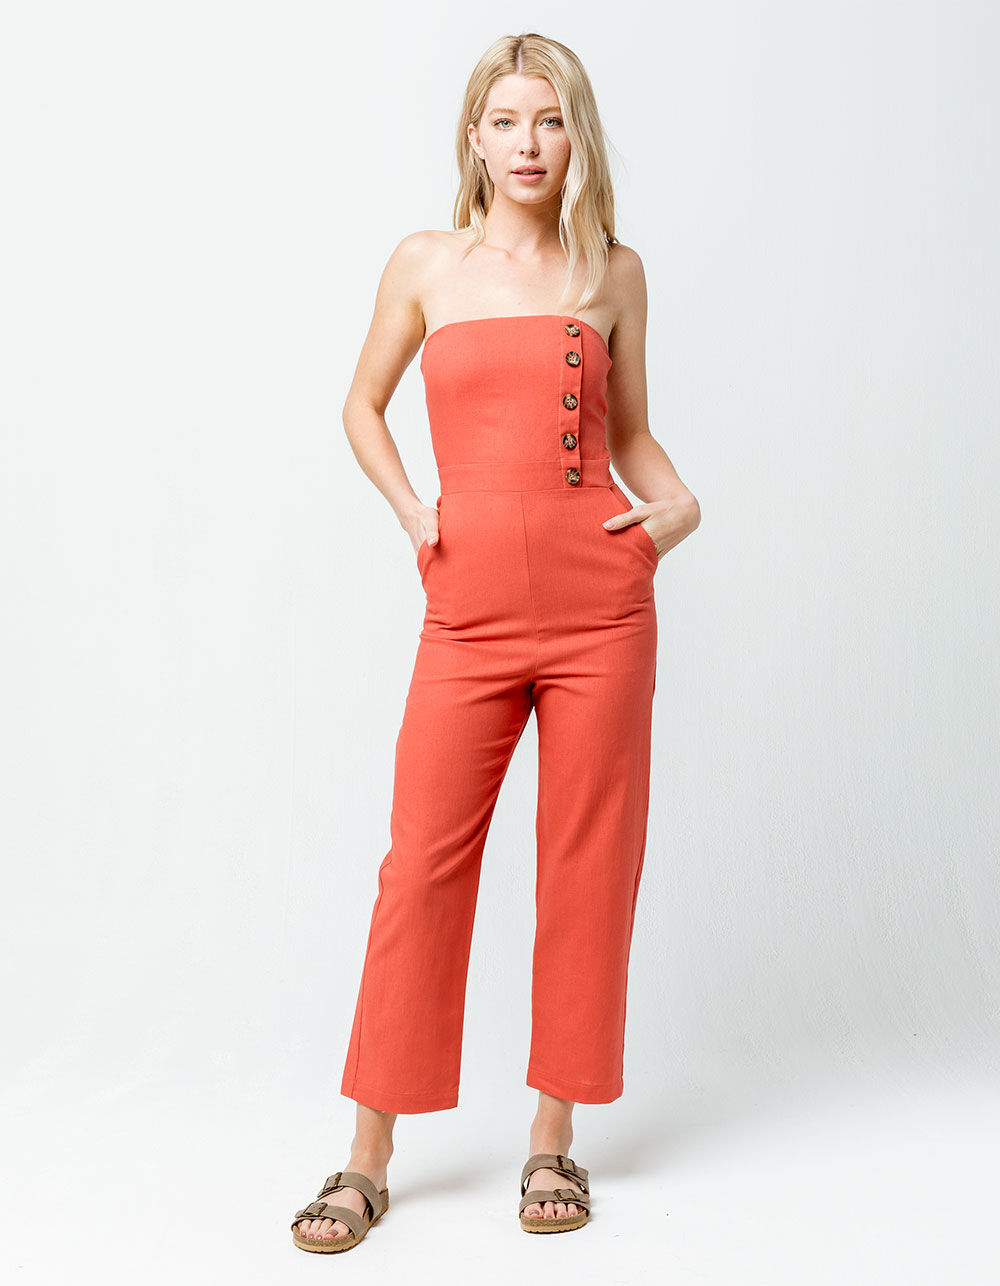 SOCIAL GYPSY Structured Button Front Tube Coral Jumpsuit